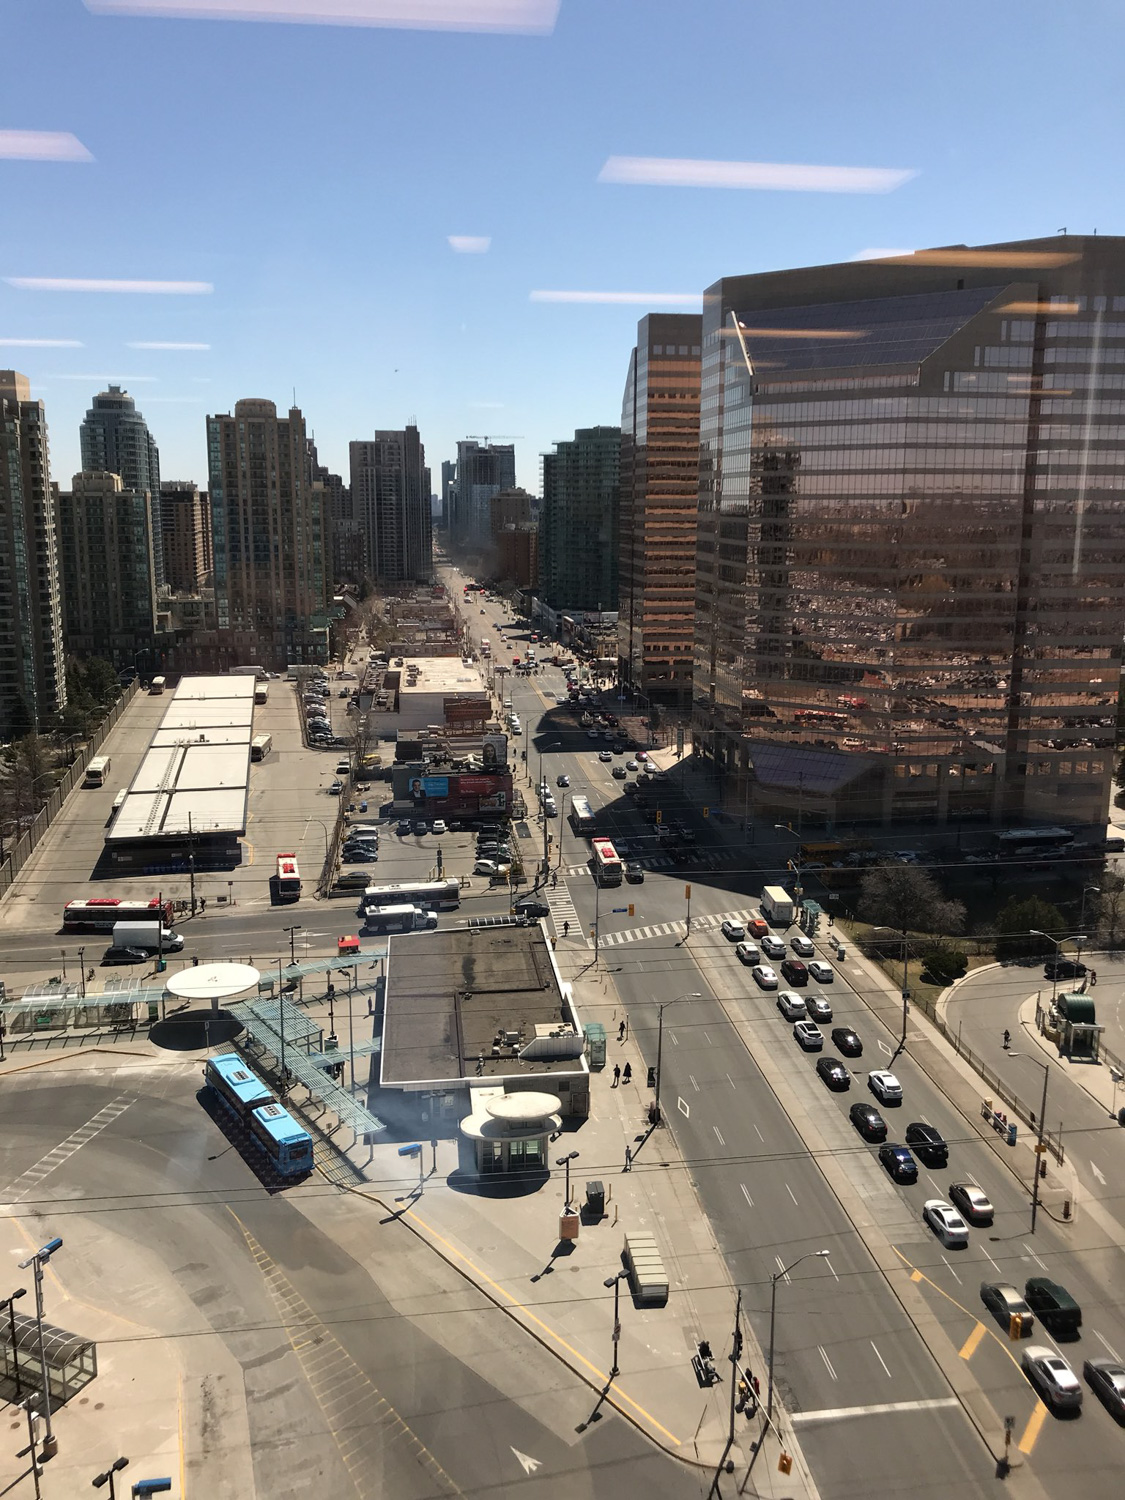 <div class='meta'><div class='origin-logo' data-origin='none'></div><span class='caption-text' data-credit='Jiacheng Huang'>A white van hit pedestrians in Toronto, Canada, killing 9 people and injuring 16 more.</span></div>